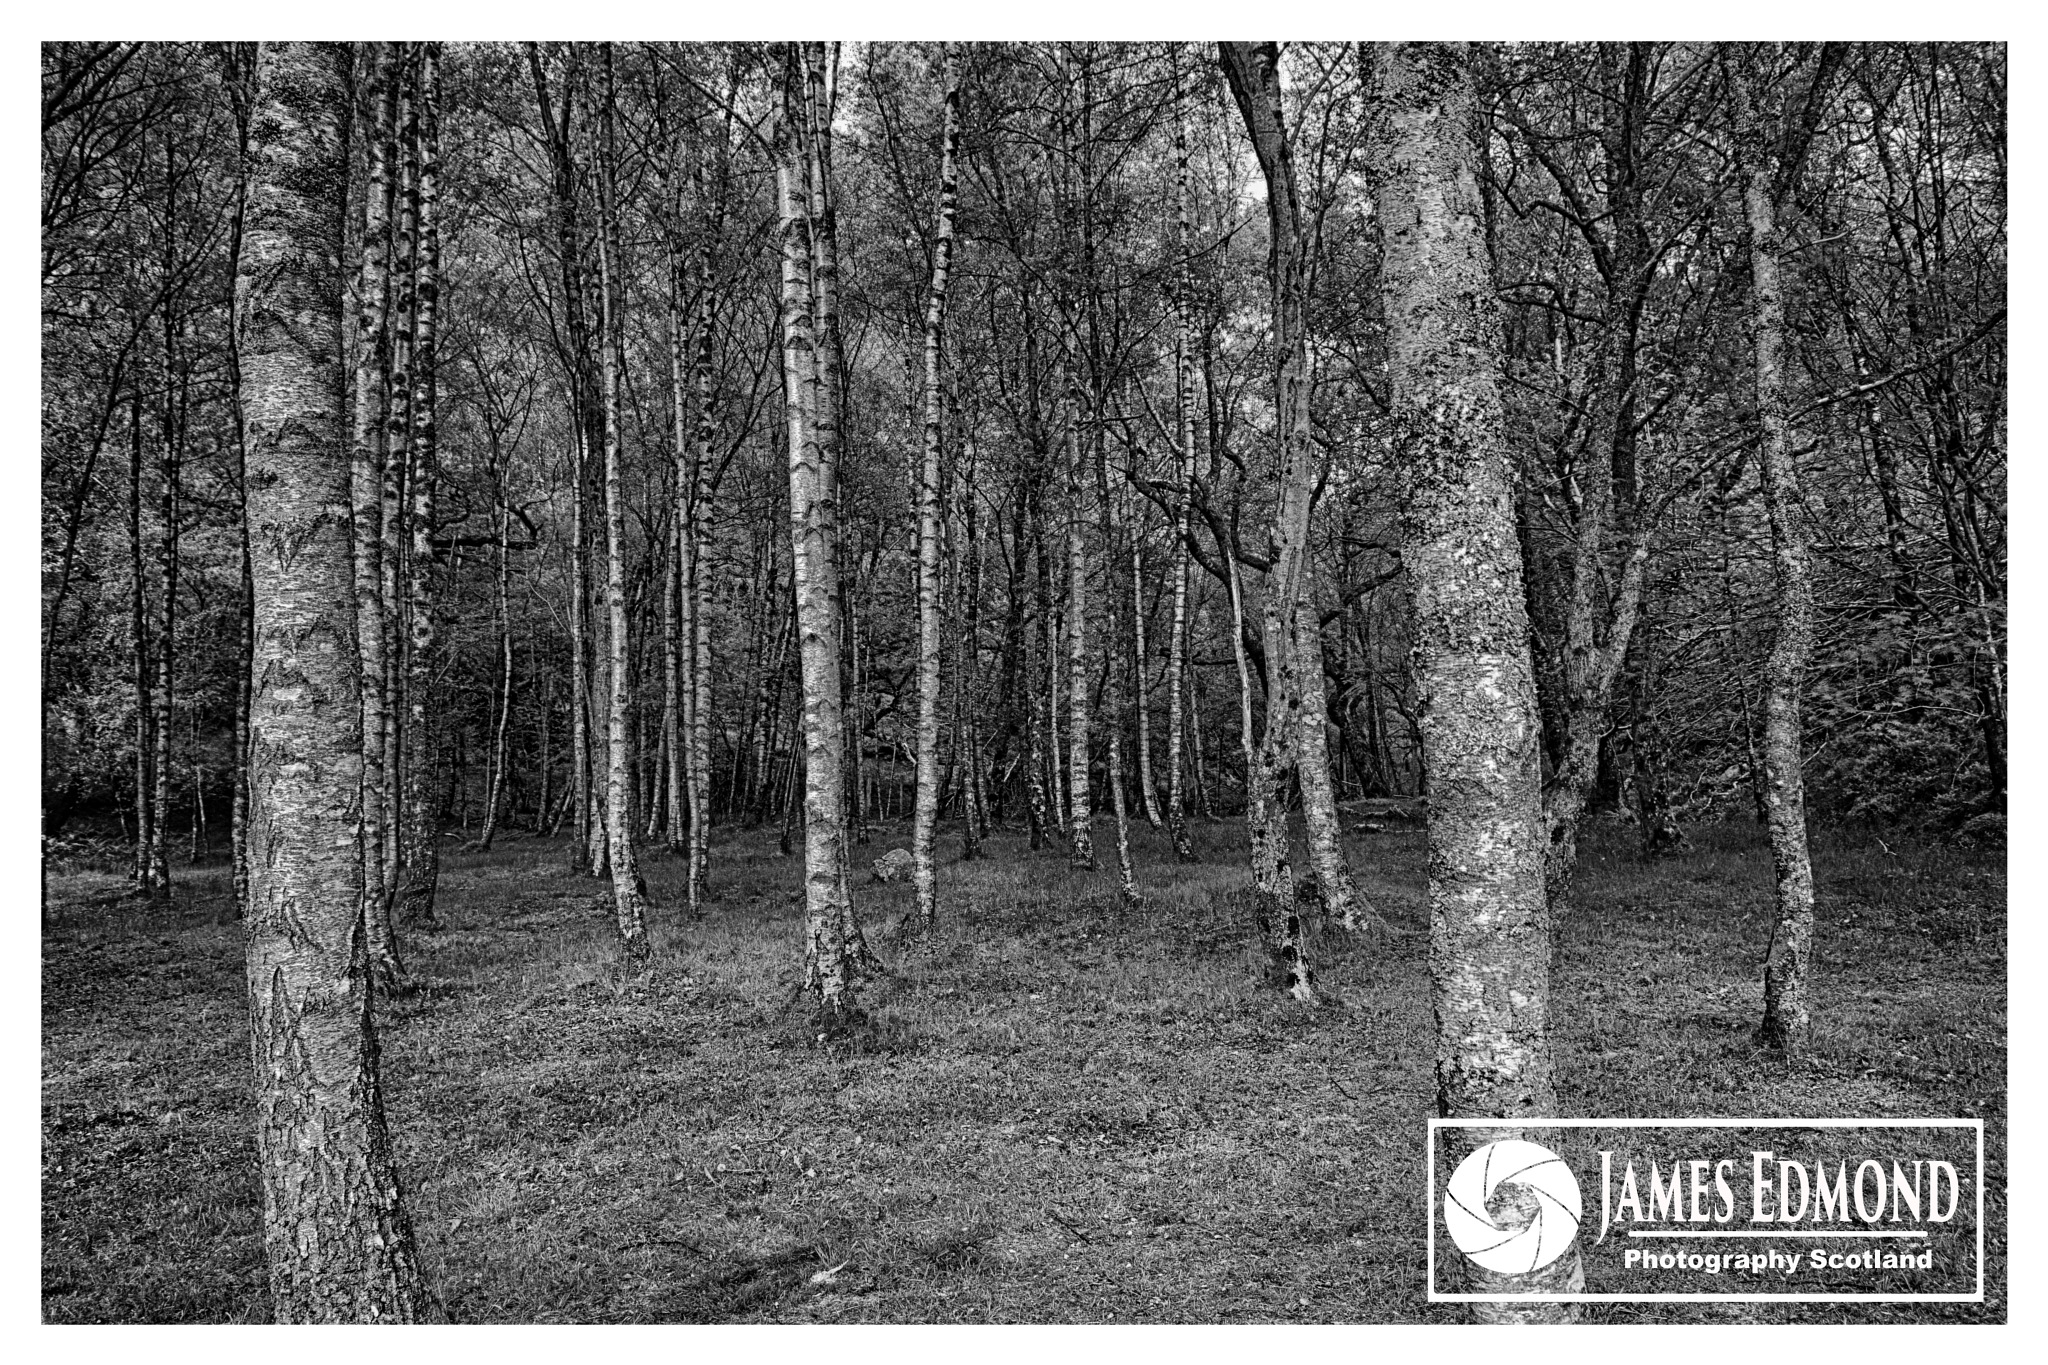 Trees in Monochrome at Loch Katrine by James Edmond Photography